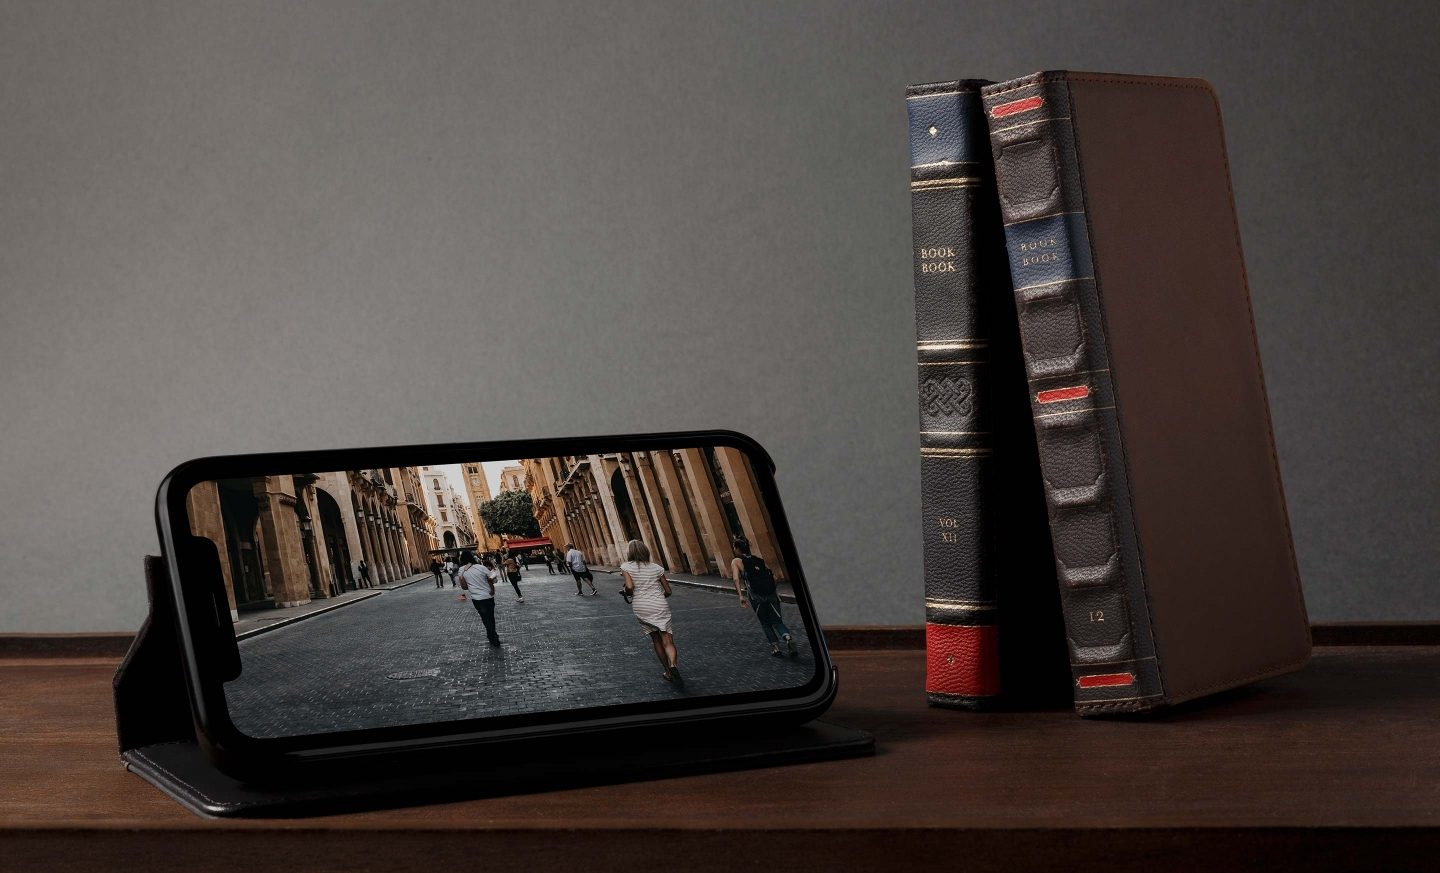 Twelve South has released cases for the iPhone XS, Max XS and XR